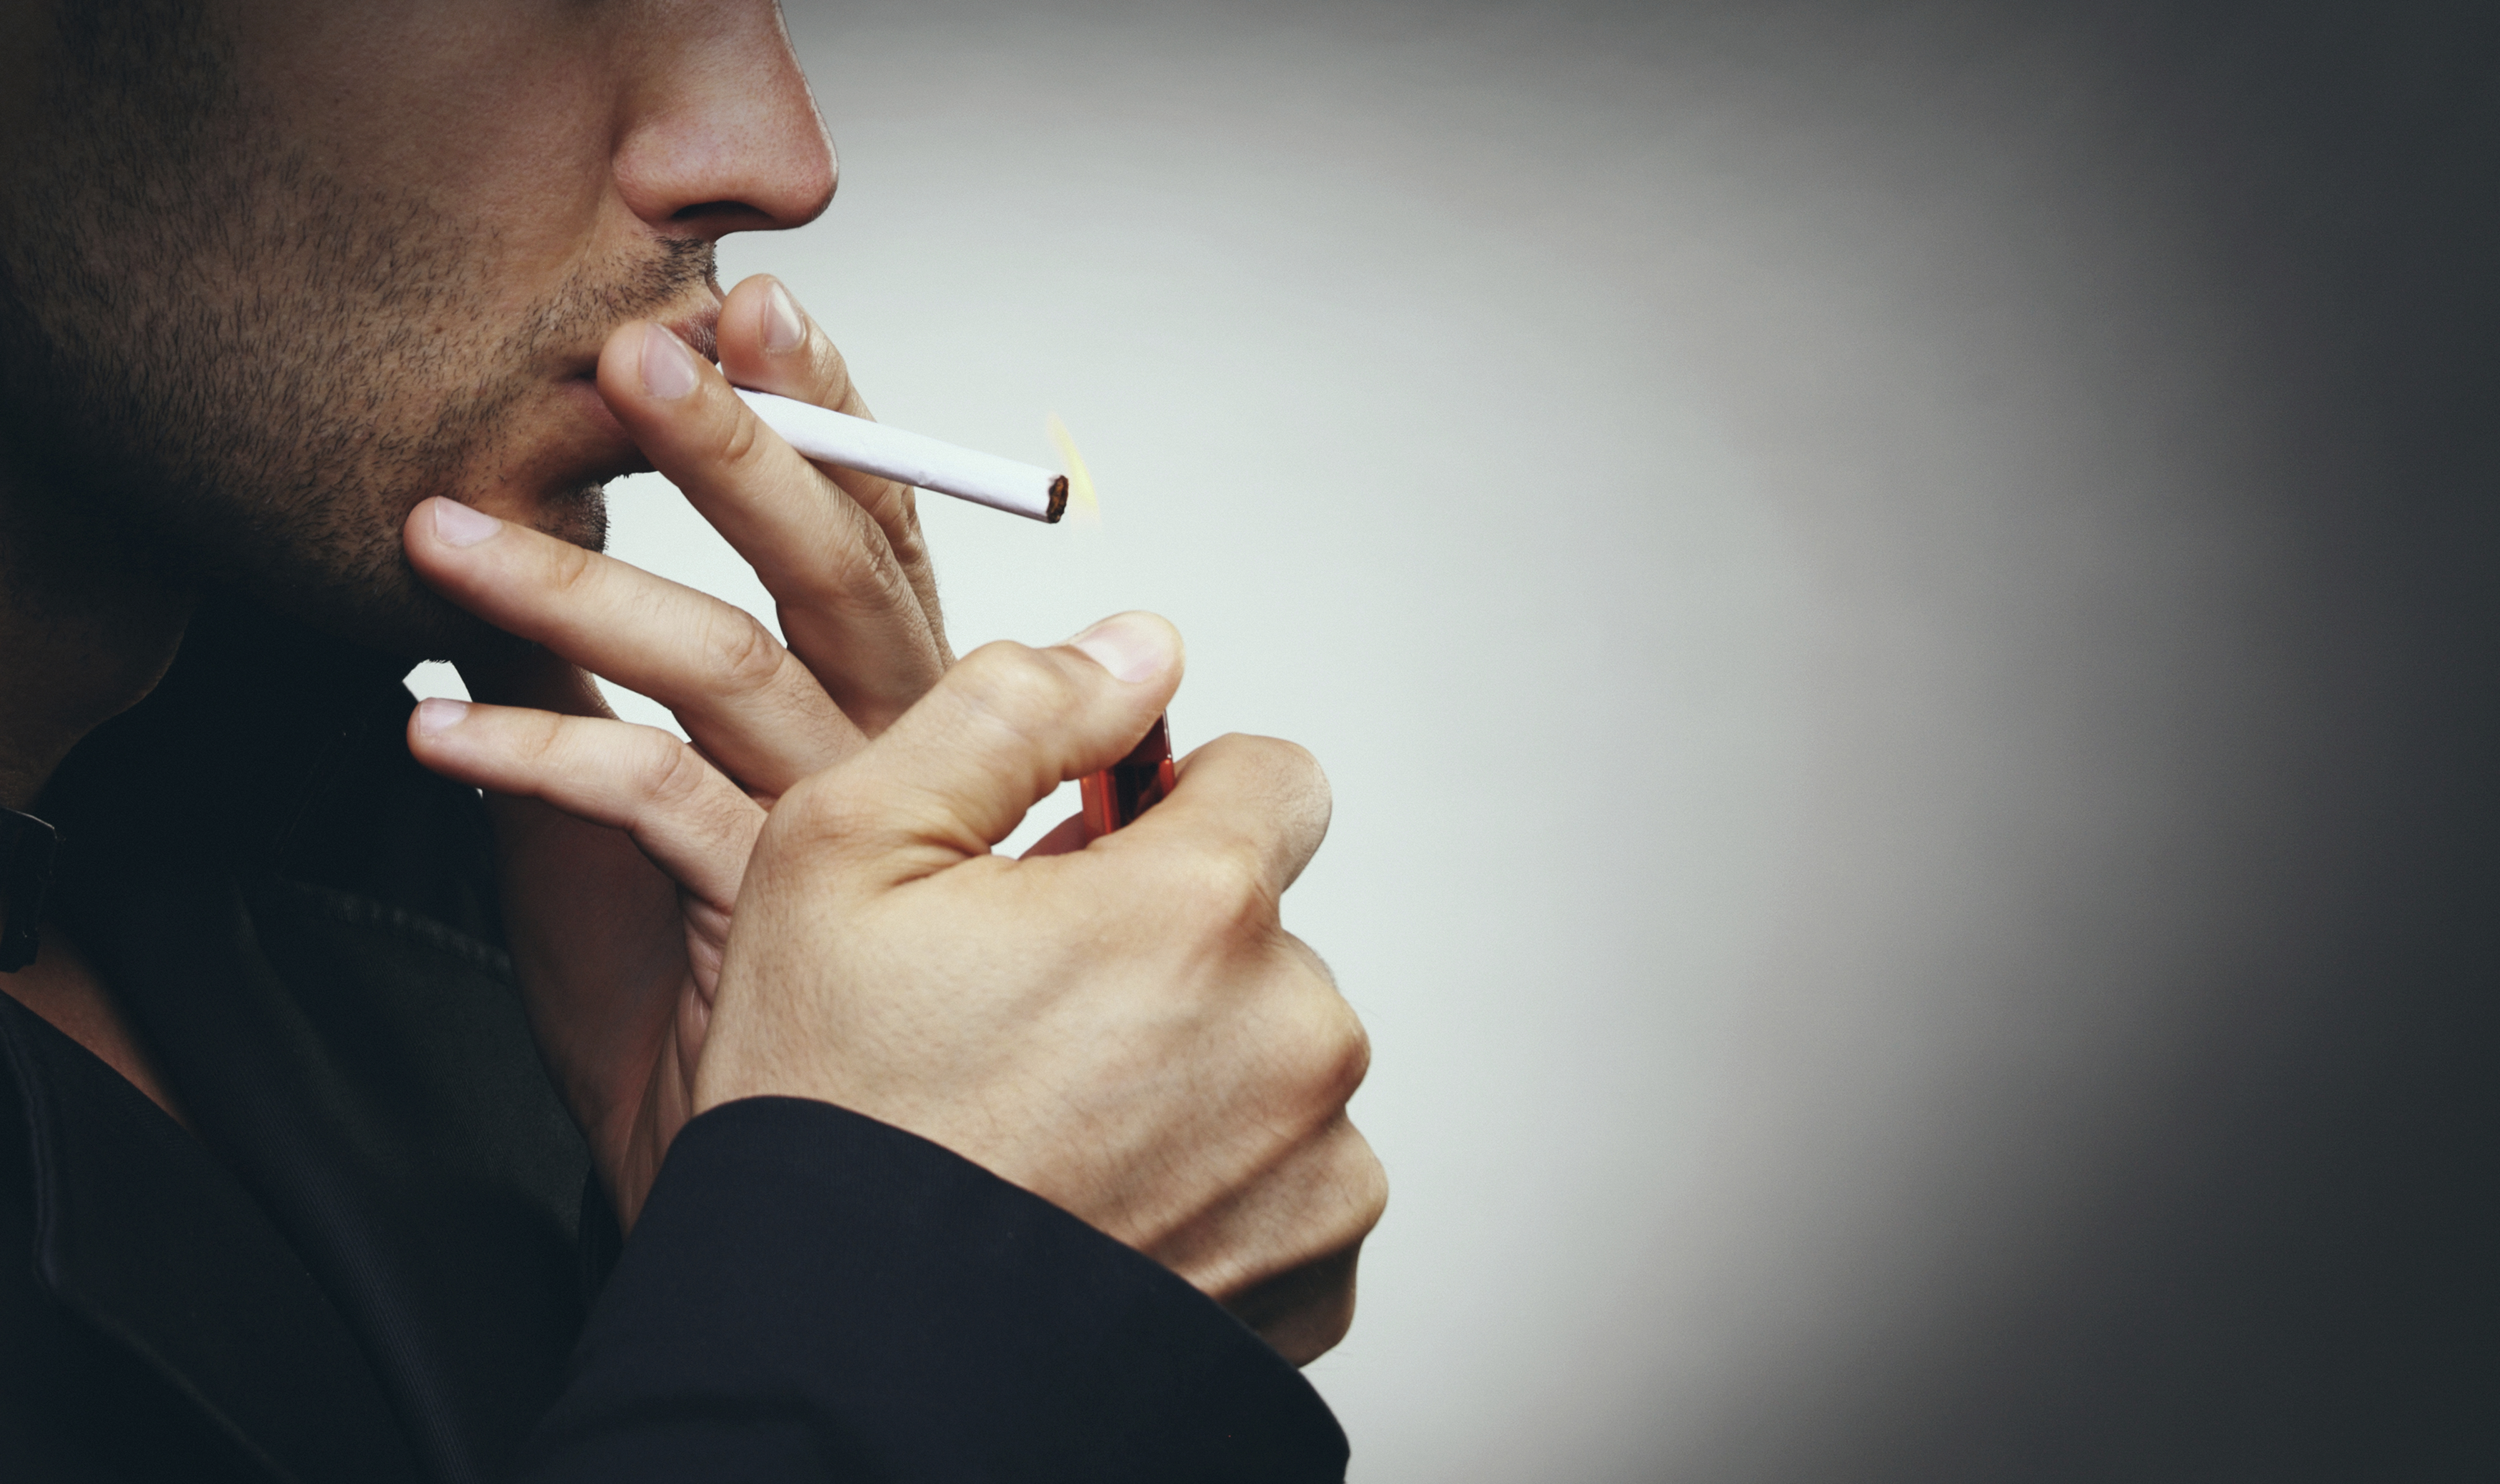 E-cigarette vapour disables key immune cells in the lung and